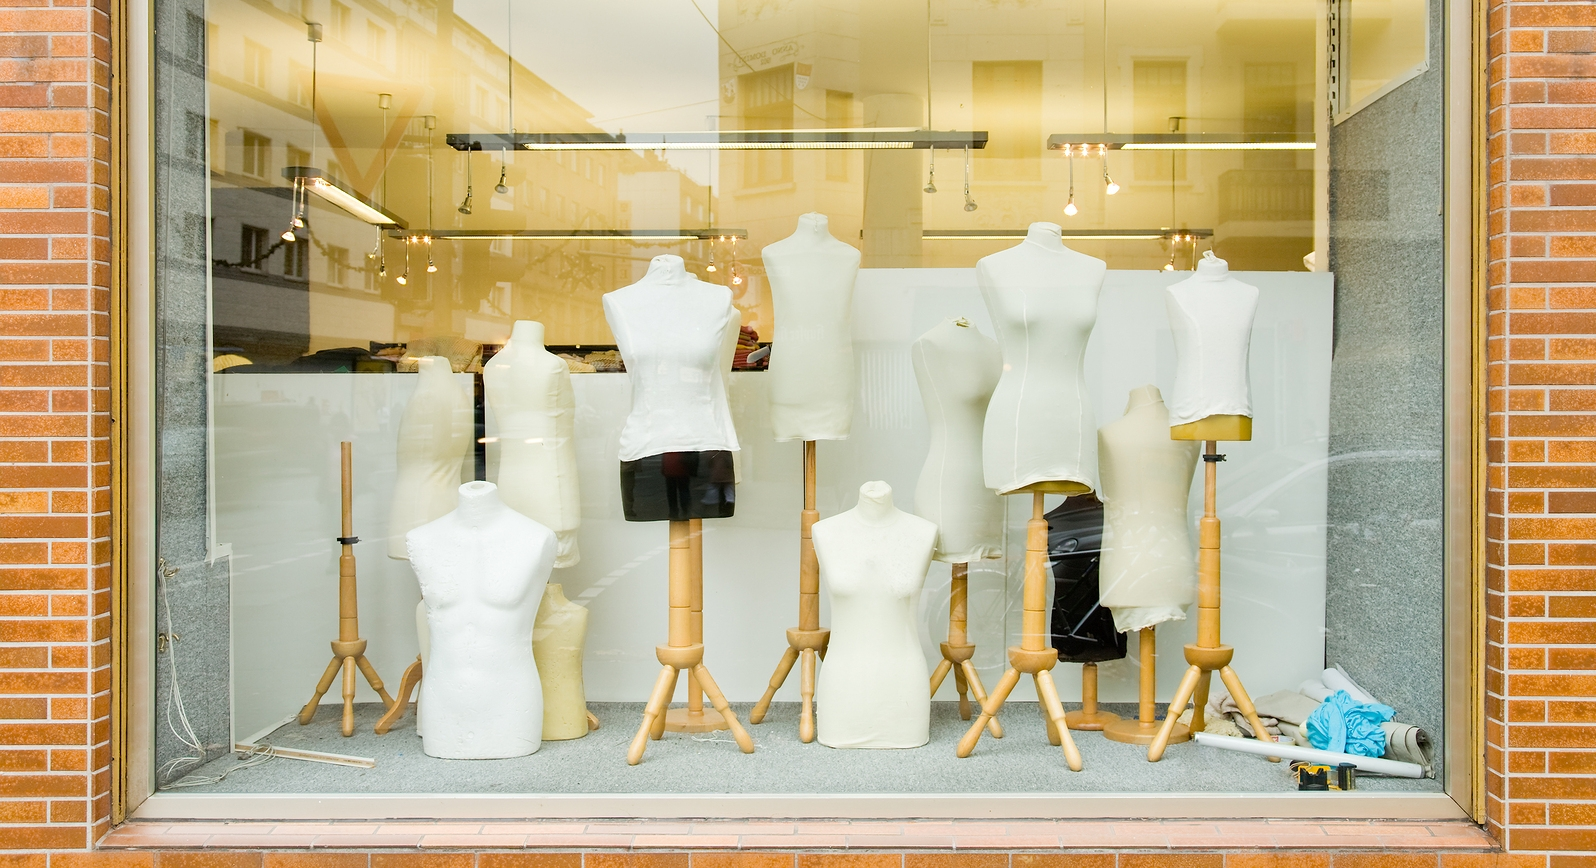 bigstock-Mannequins-in-a-fashion-store-27473099.jpg